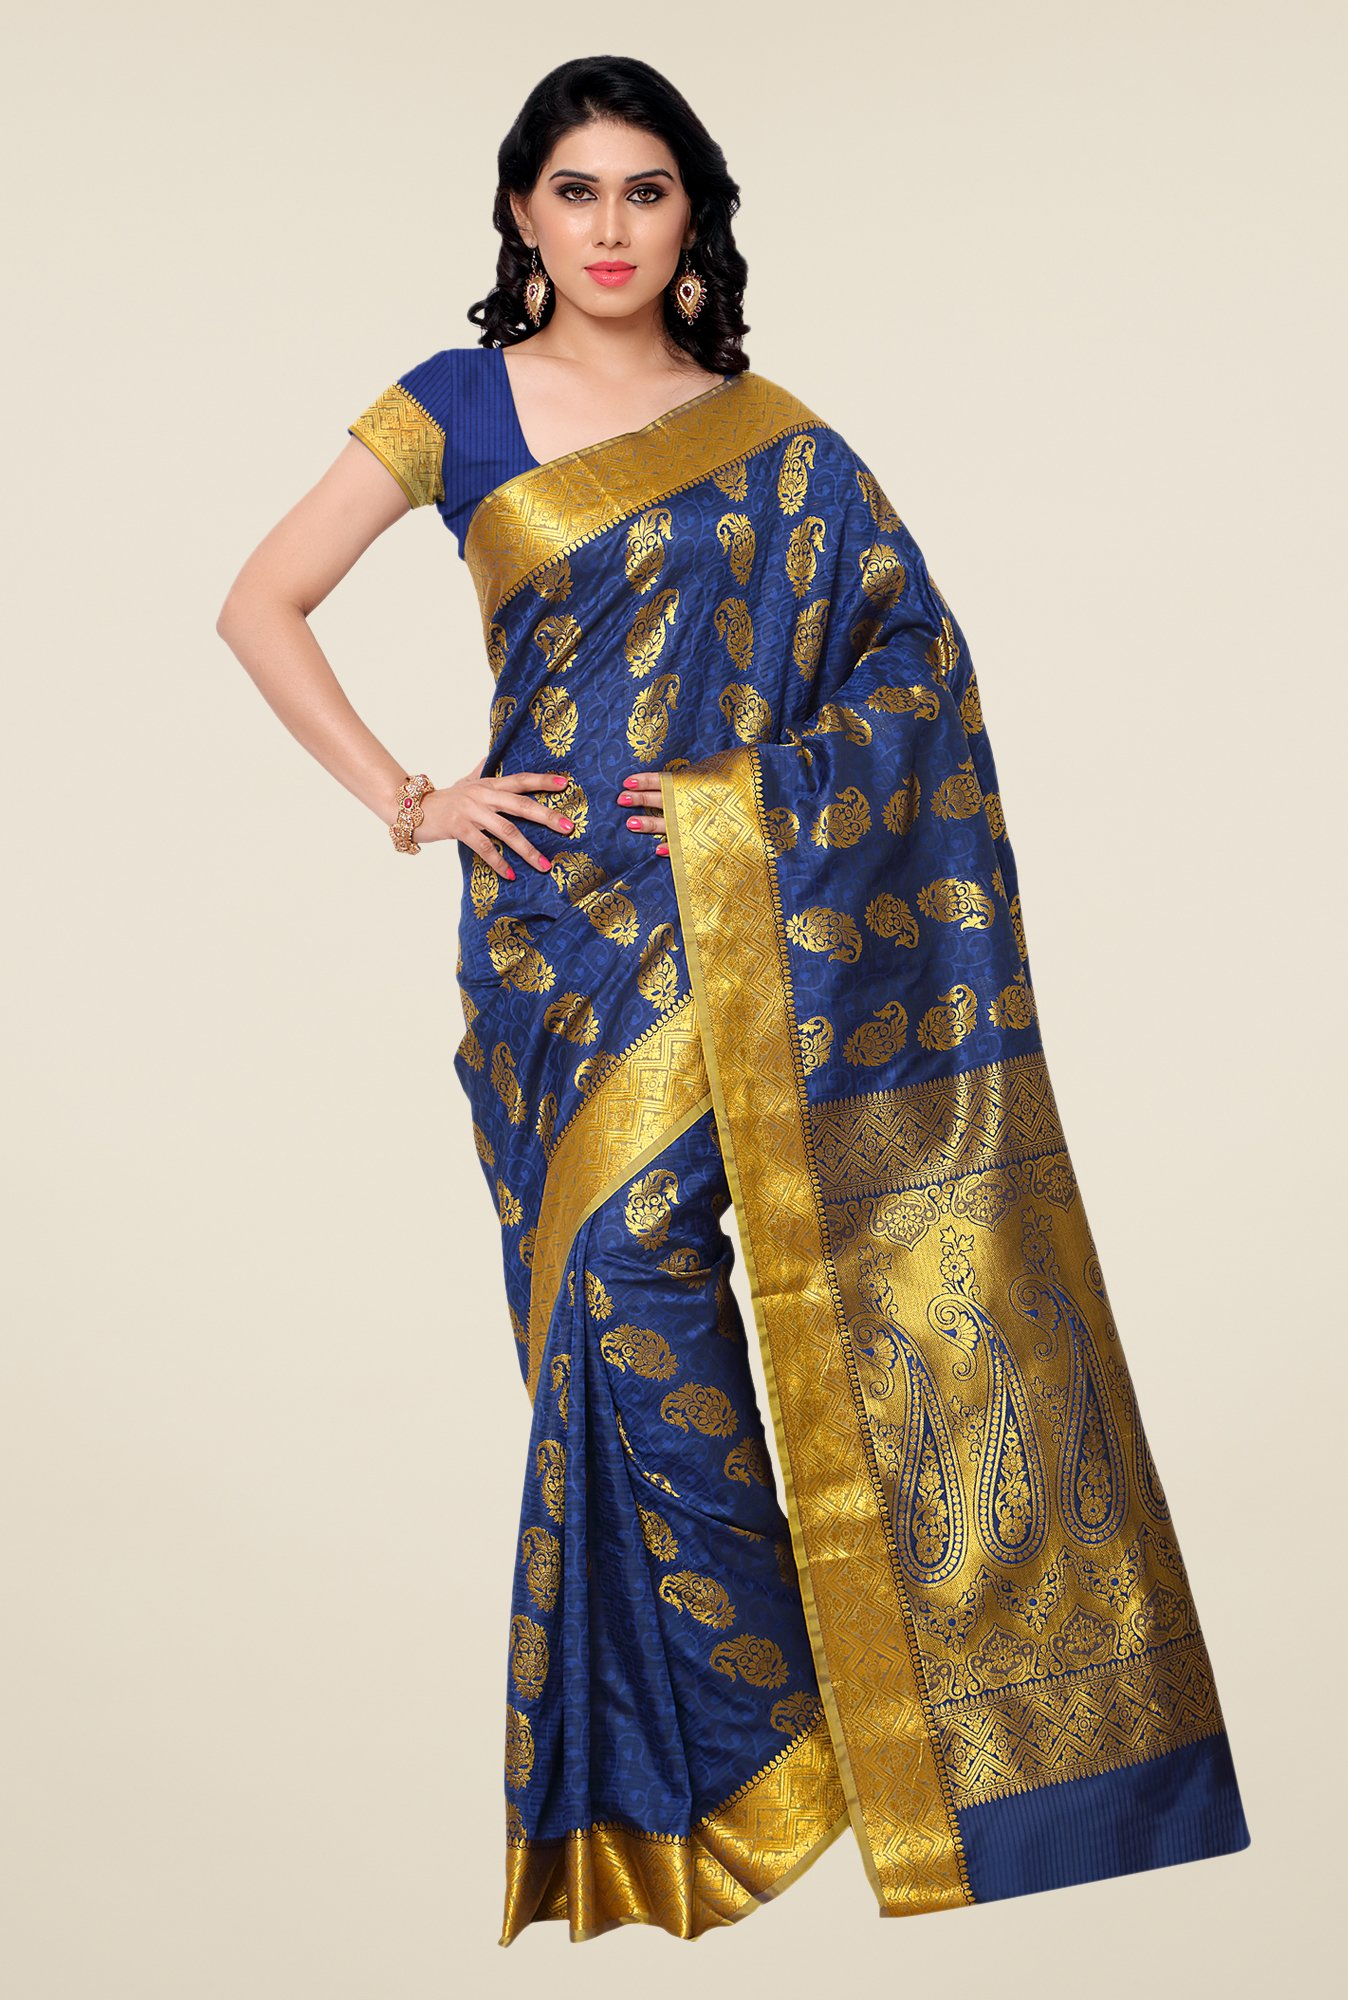 Janasya Dark Blue Paisley Print Kanchipuram Silk Saree